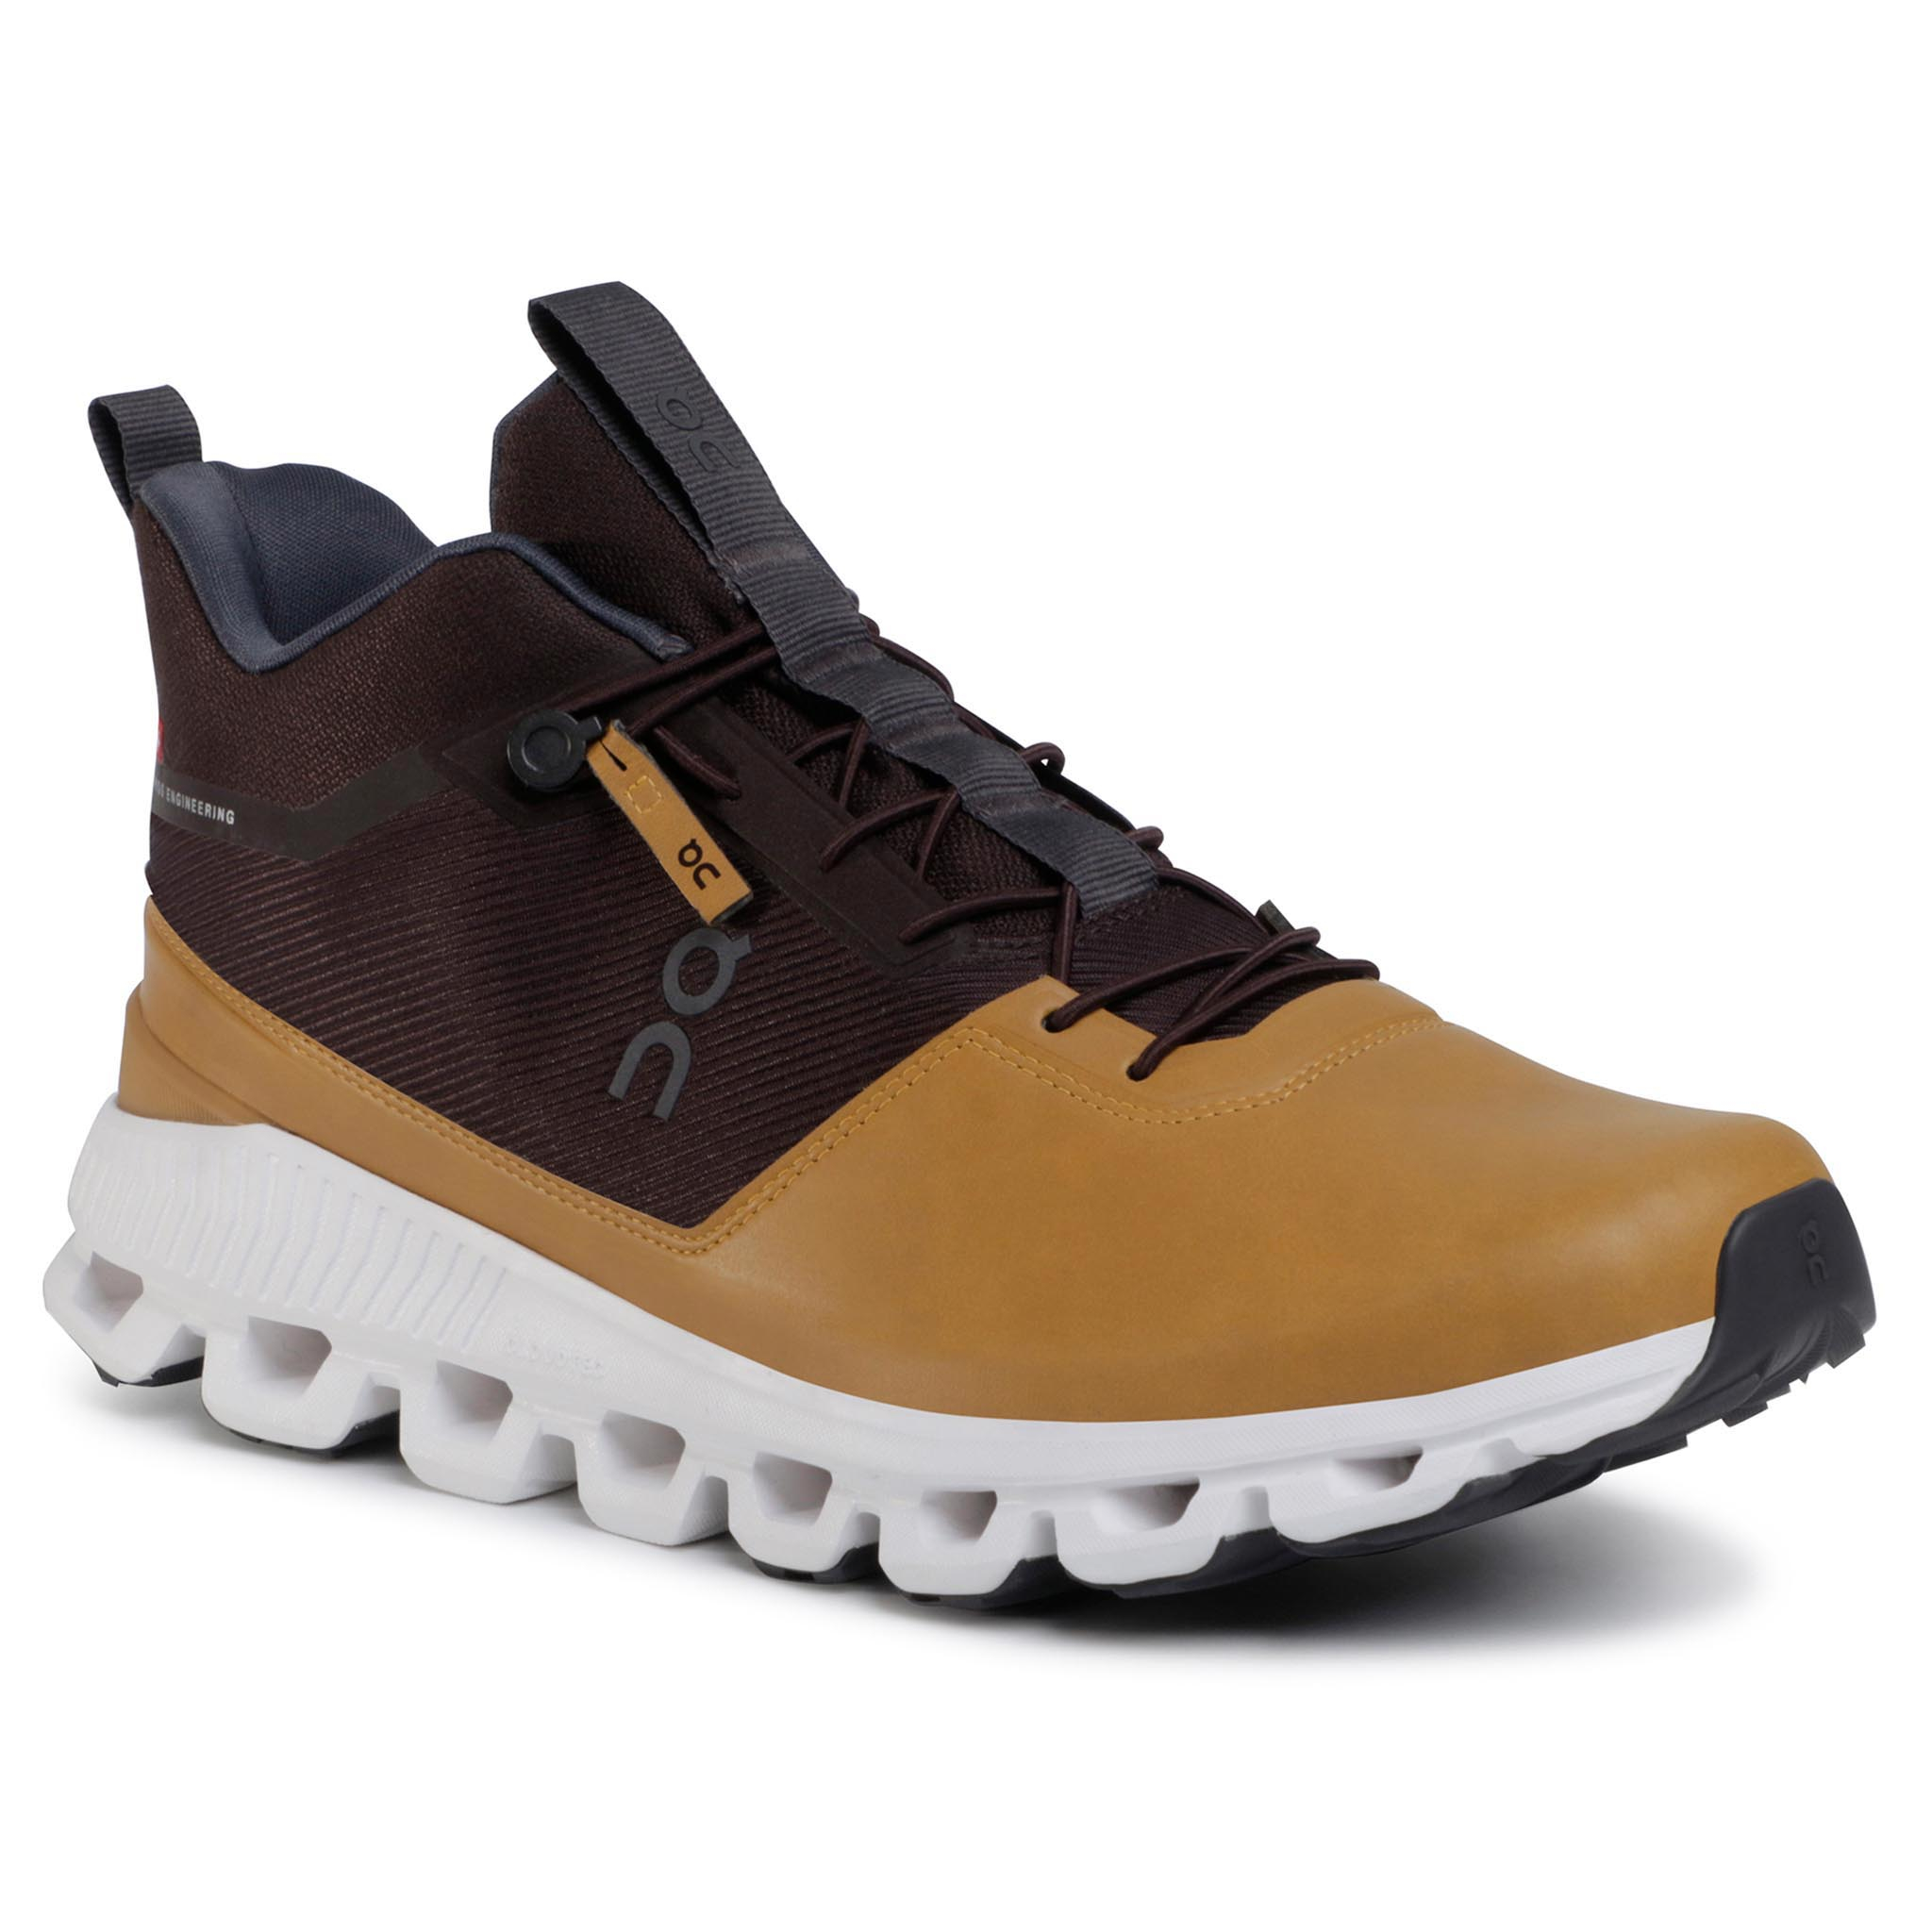 Image of Sneakers ON - Cloud Hi 2899807 Umber/Caramel